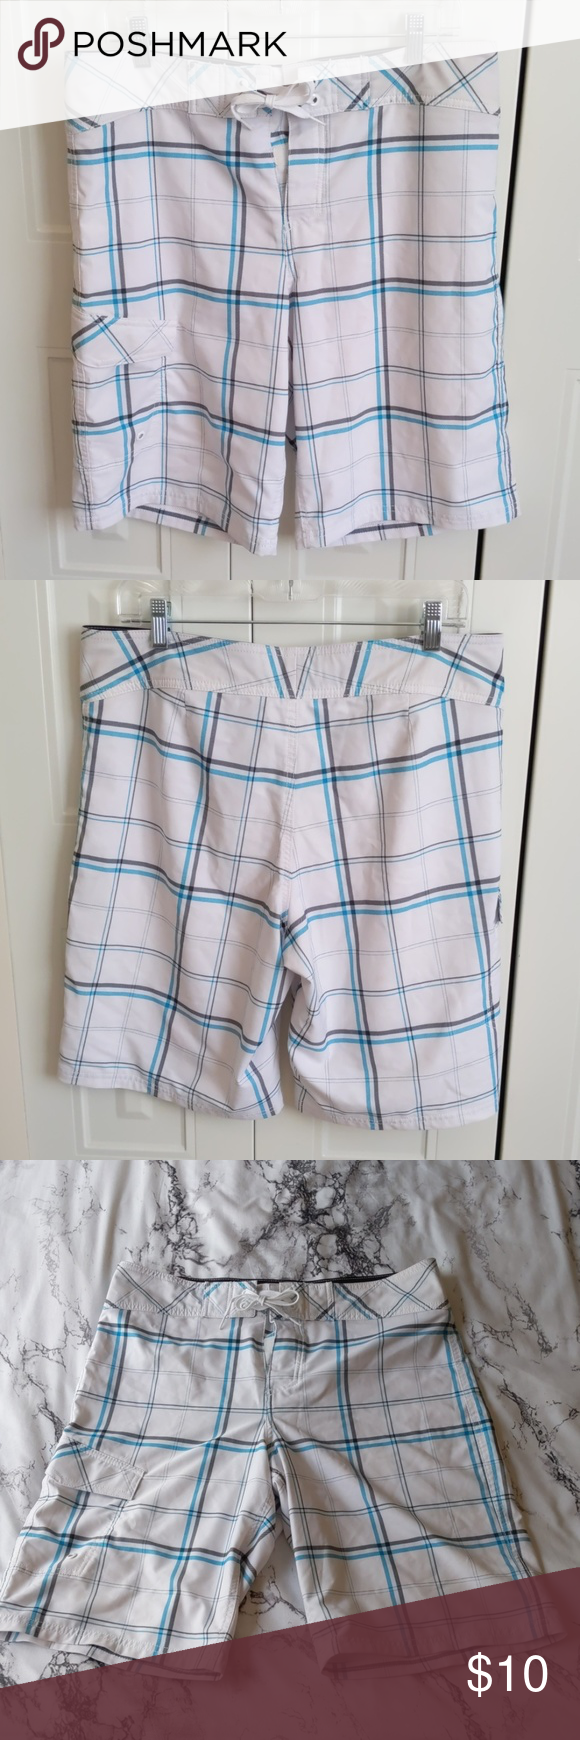 Men's Board Shorts Bathing Suit Mossimo Supply Co. Men's bathing suit. White with blue and black tartan pattern. ***Smoke/pet free.*** Mossimo Supply Co. Swim Board Shorts #mensbathingsuits Men's Board Shorts Bathing Suit Mossimo Supply Co. Men's bathing suit. White with blue and black tartan pattern. ***Smoke/pet free.*** Mossimo Supply Co. Swim Board Shorts #mensbathingsuits Men's Board Shorts Bathing Suit Mossimo Supply Co. Men's bathing suit. White with blue and black tartan pattern. ***Smok #mensbathingsuits